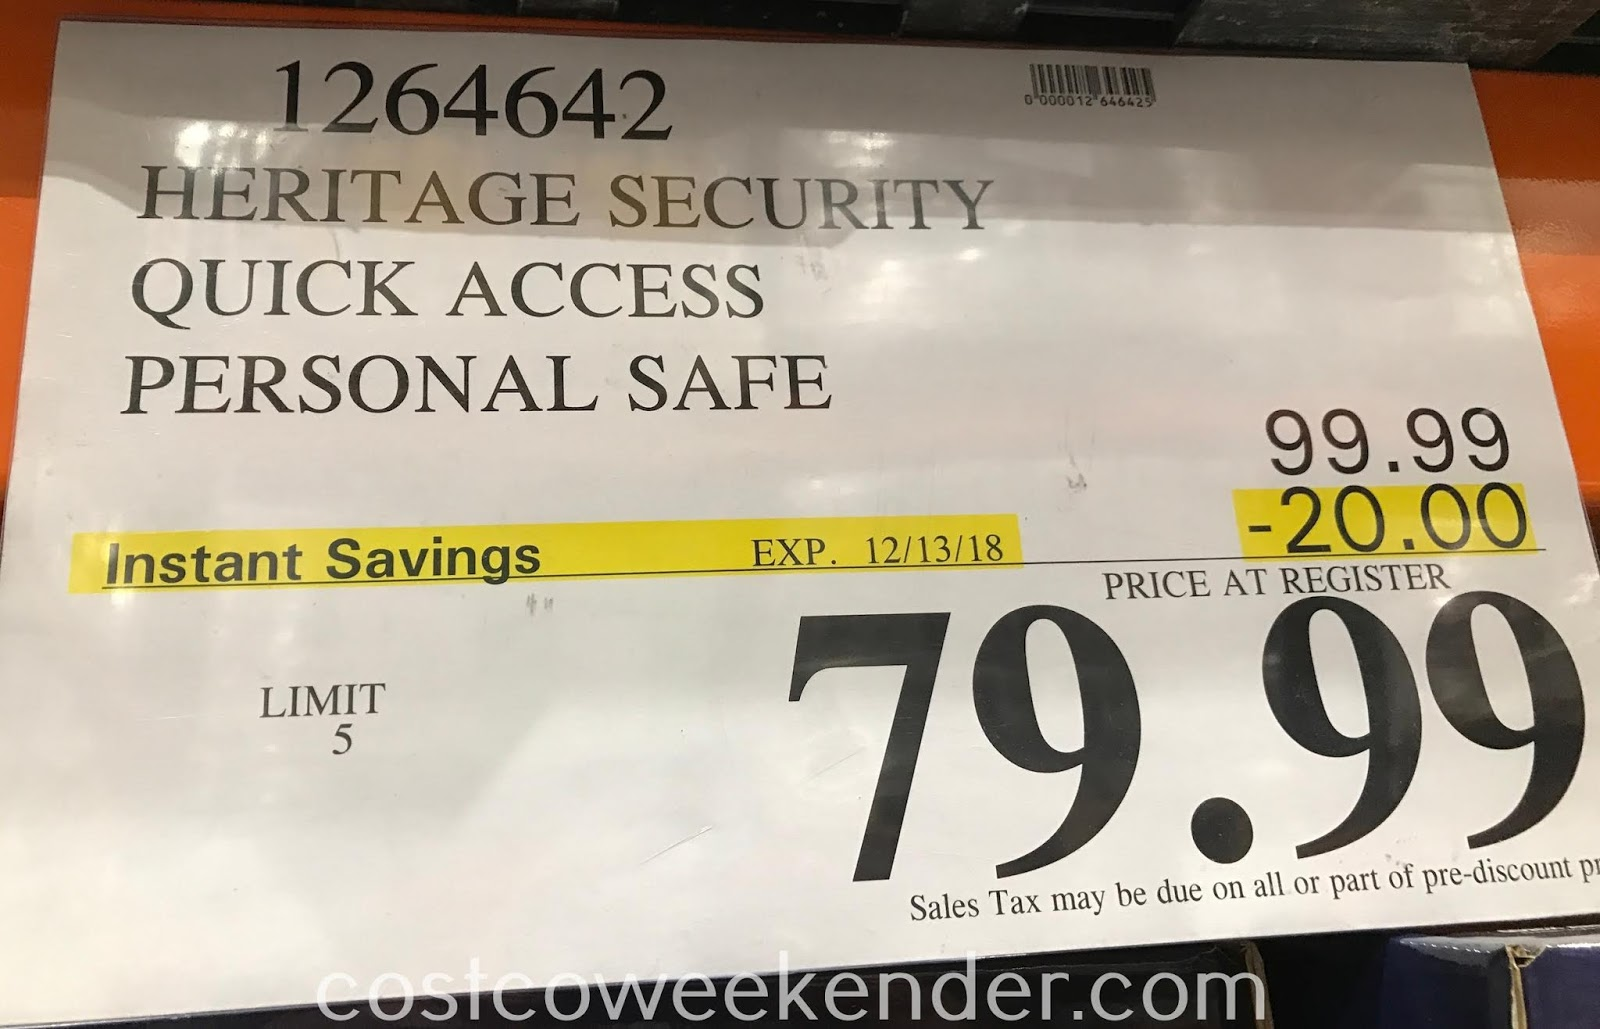 Deal for the Heritage Security Quick Access Personal Safe at Costco